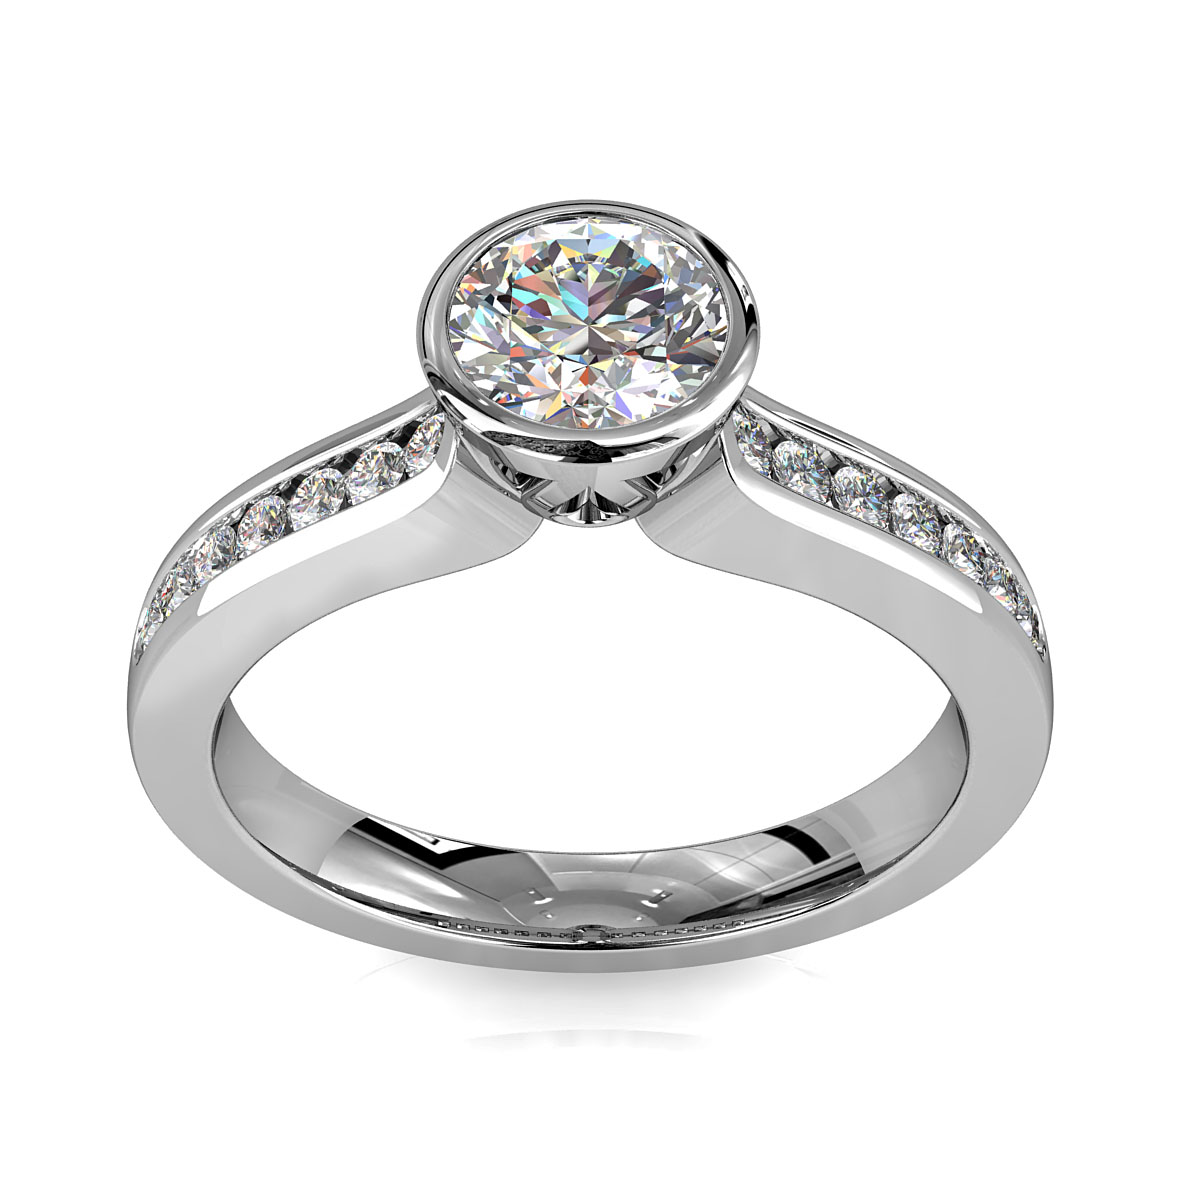 Round Brilliant Cut Diamond Solitaire Engagement Ring, Bezel Set on a Channel Set Band with Lotus Undersetting.